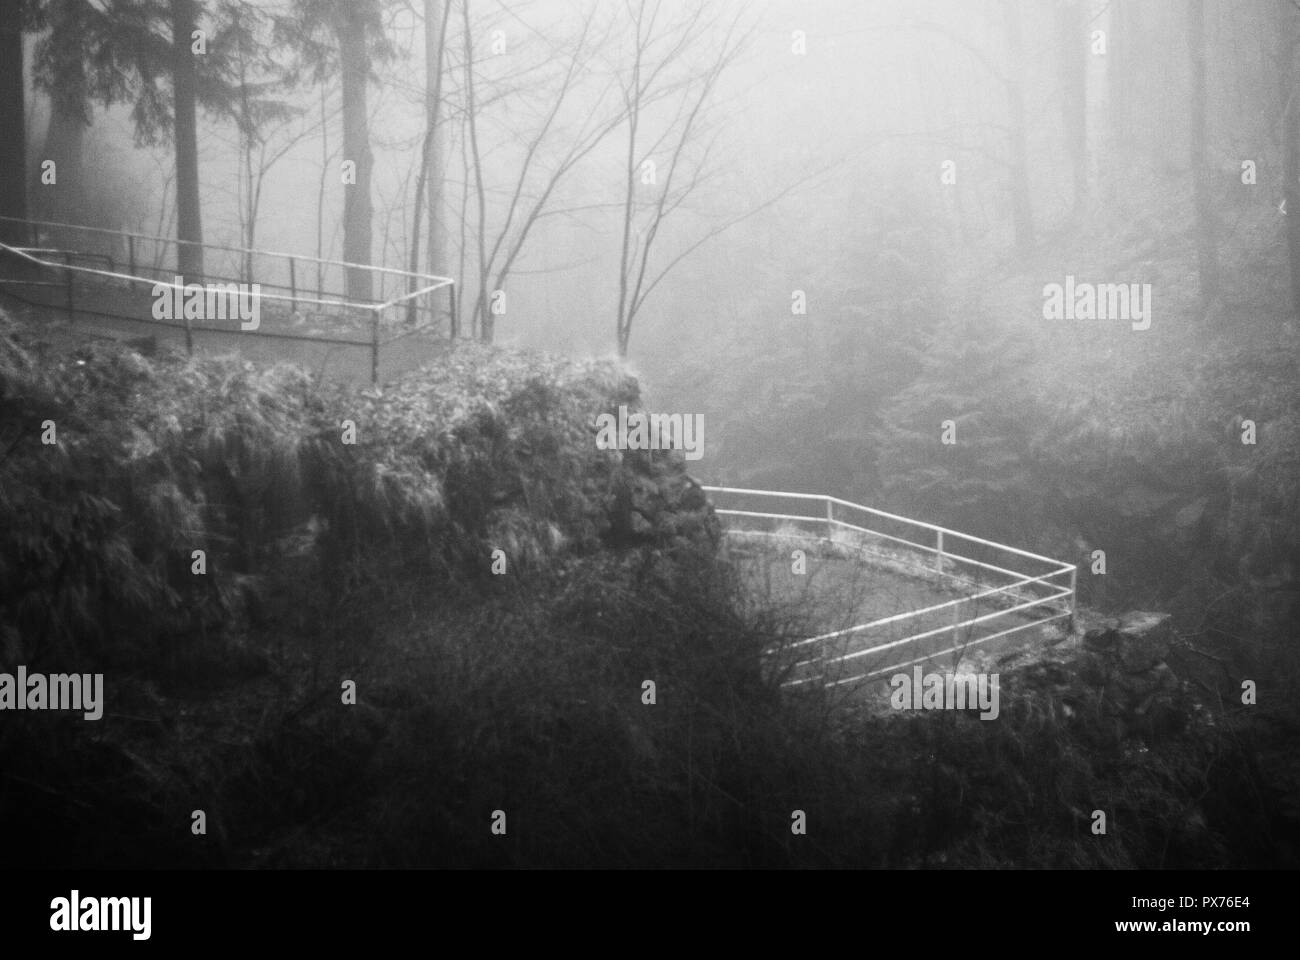 Gloomy noon by in the misty mountain forest in the early spring - Stock Image